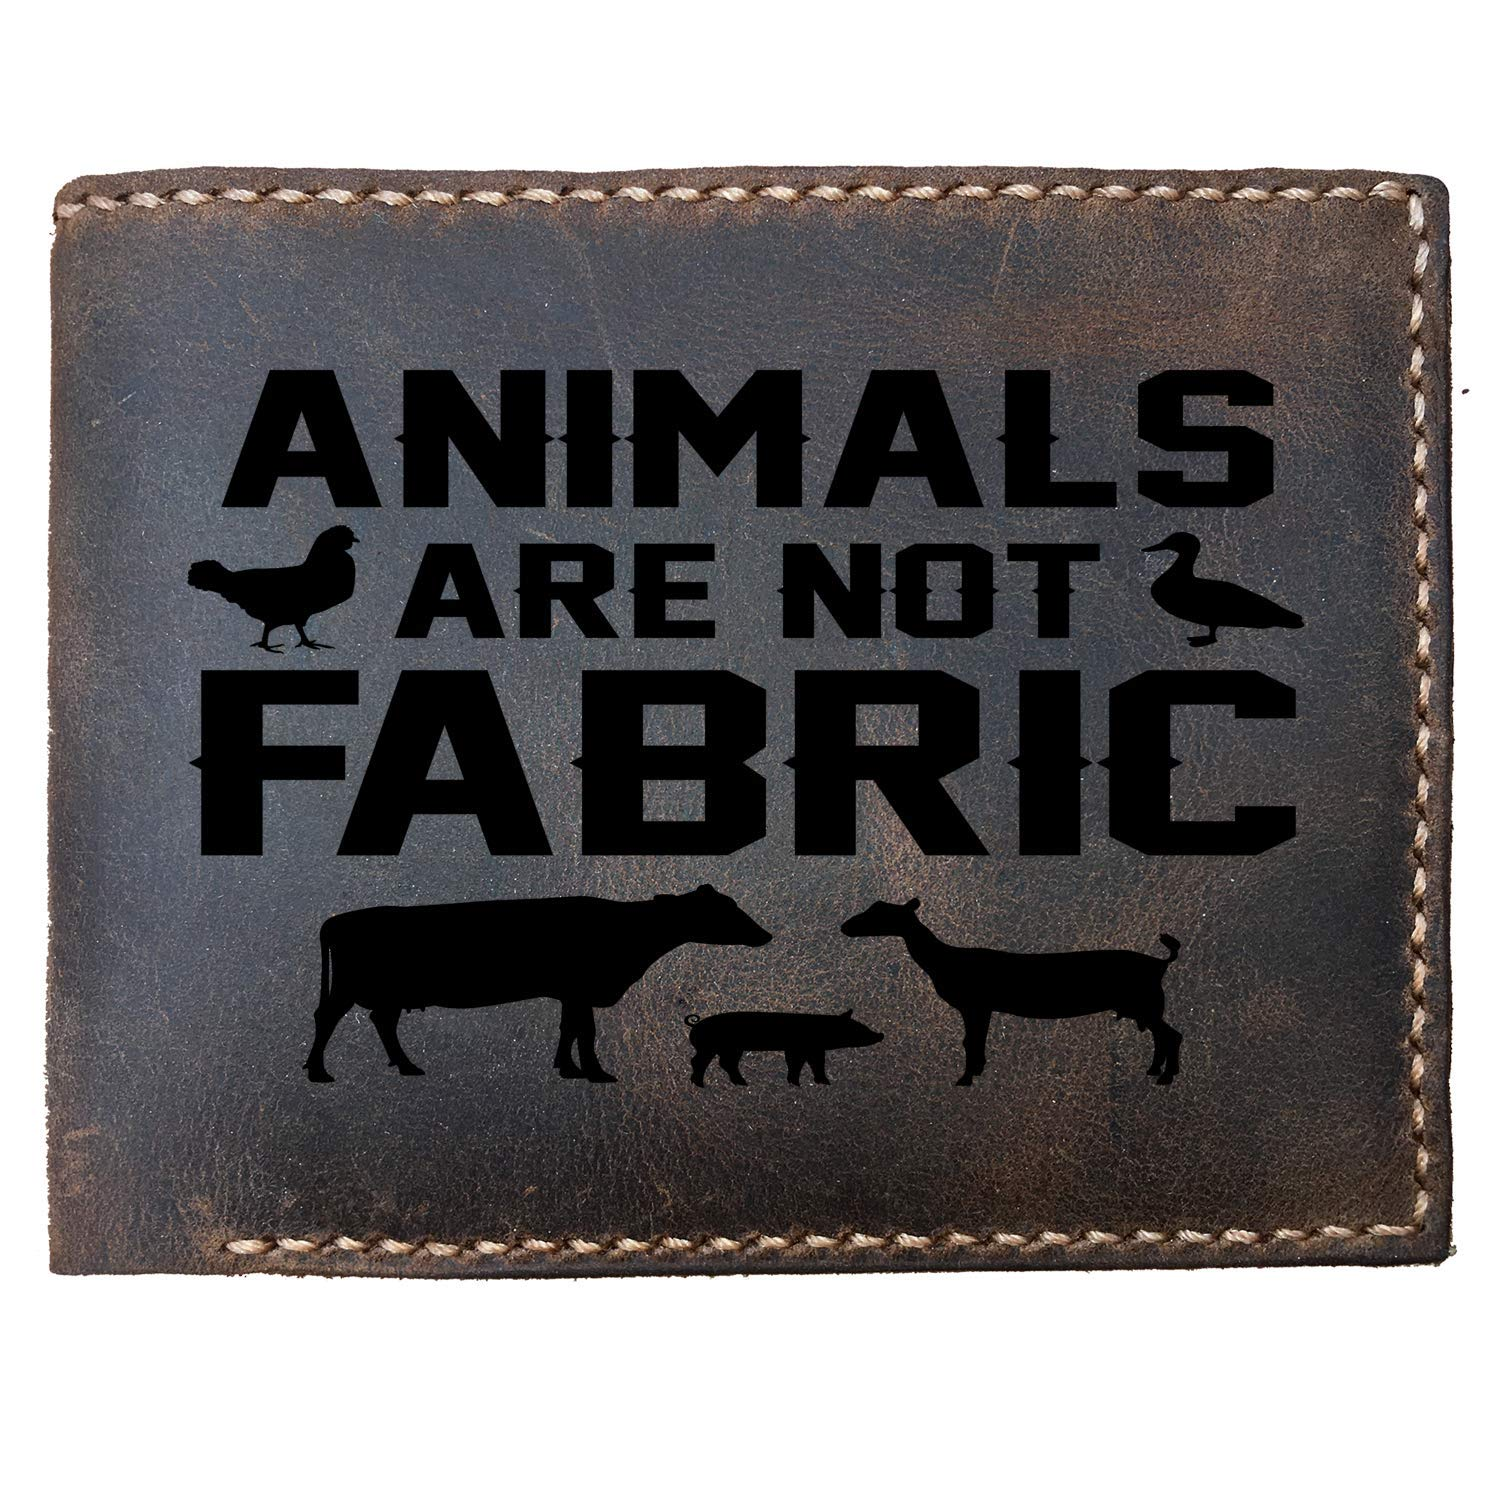 Lobsteray Animals are not Fabric Custom Laser Engraved Leather Bifold Wallet for Men